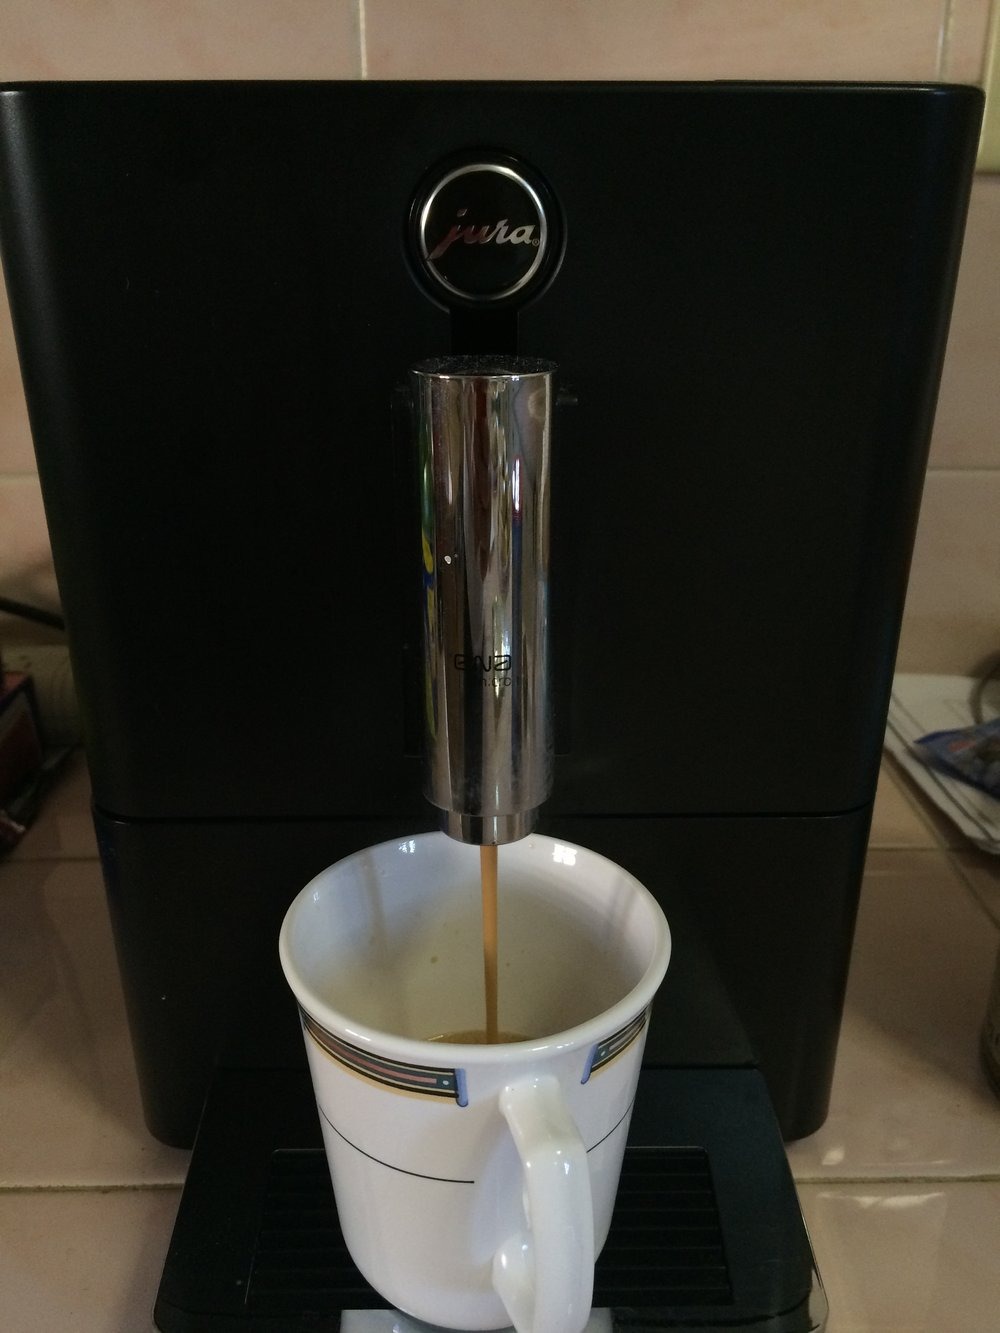 My favorite kitchen appliance, the Jura espresso/coffee maker.